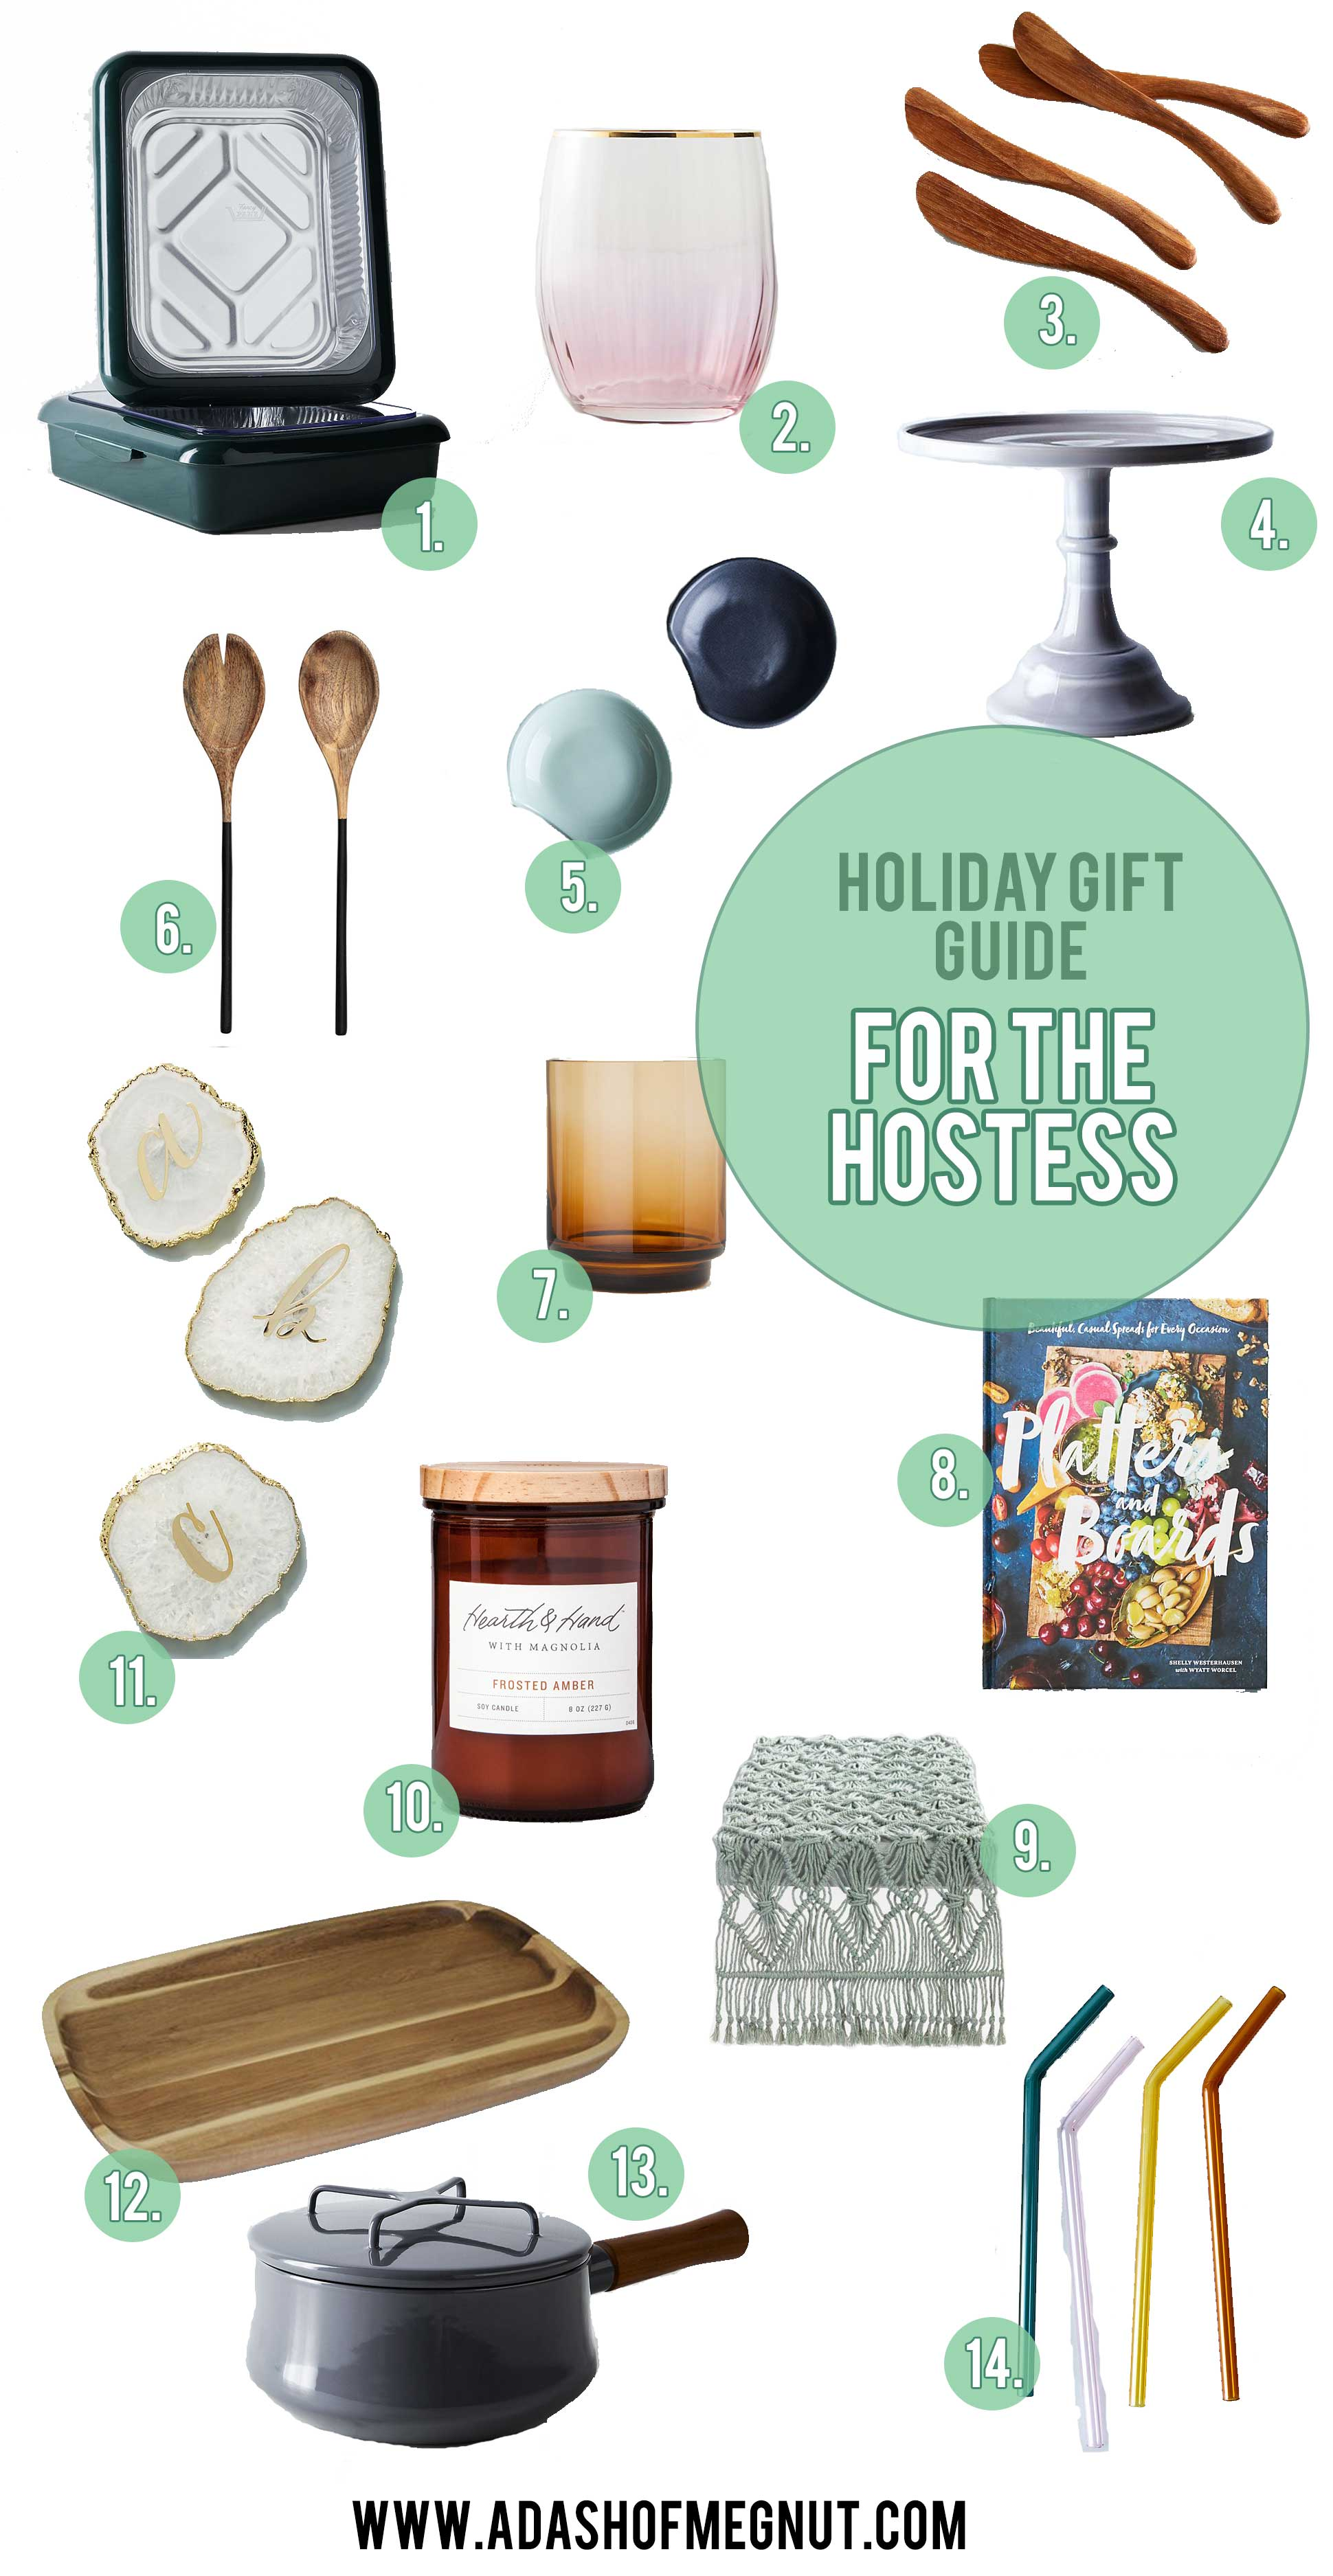 Holiday-Gift-Guide---For-the-Hostess